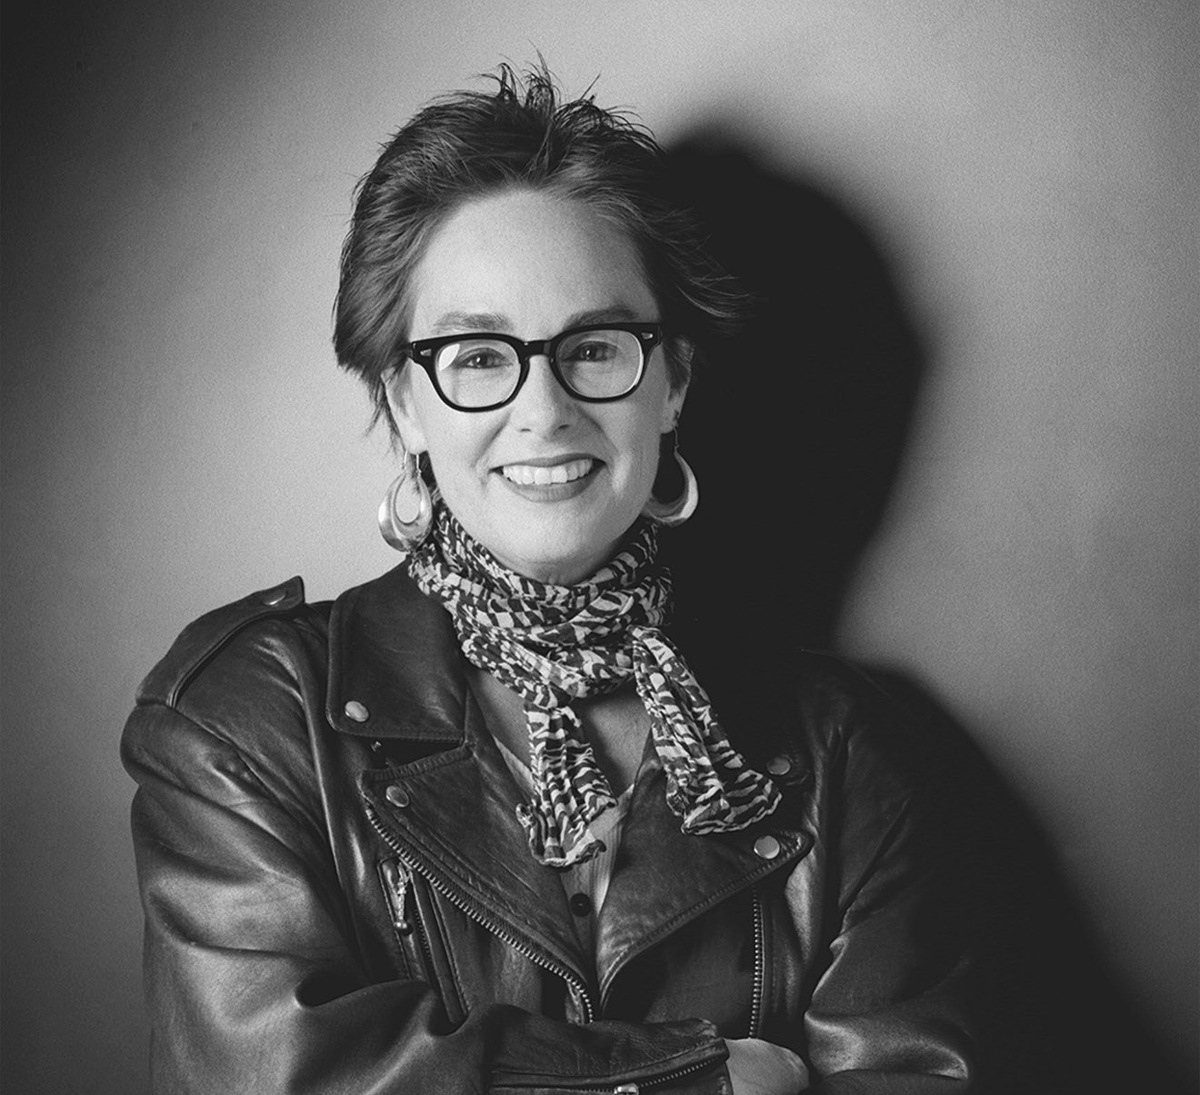 The late filmmaker/educator Judy Irola. Photo: Douglas Kirkland. Courtesy of American Society of Cinematographers. In this black-and-white portrait of Judy Irola, she has short brunette hair and glasses, she is wearing a leather jacket and she is posing with her arms crossed across her chest.